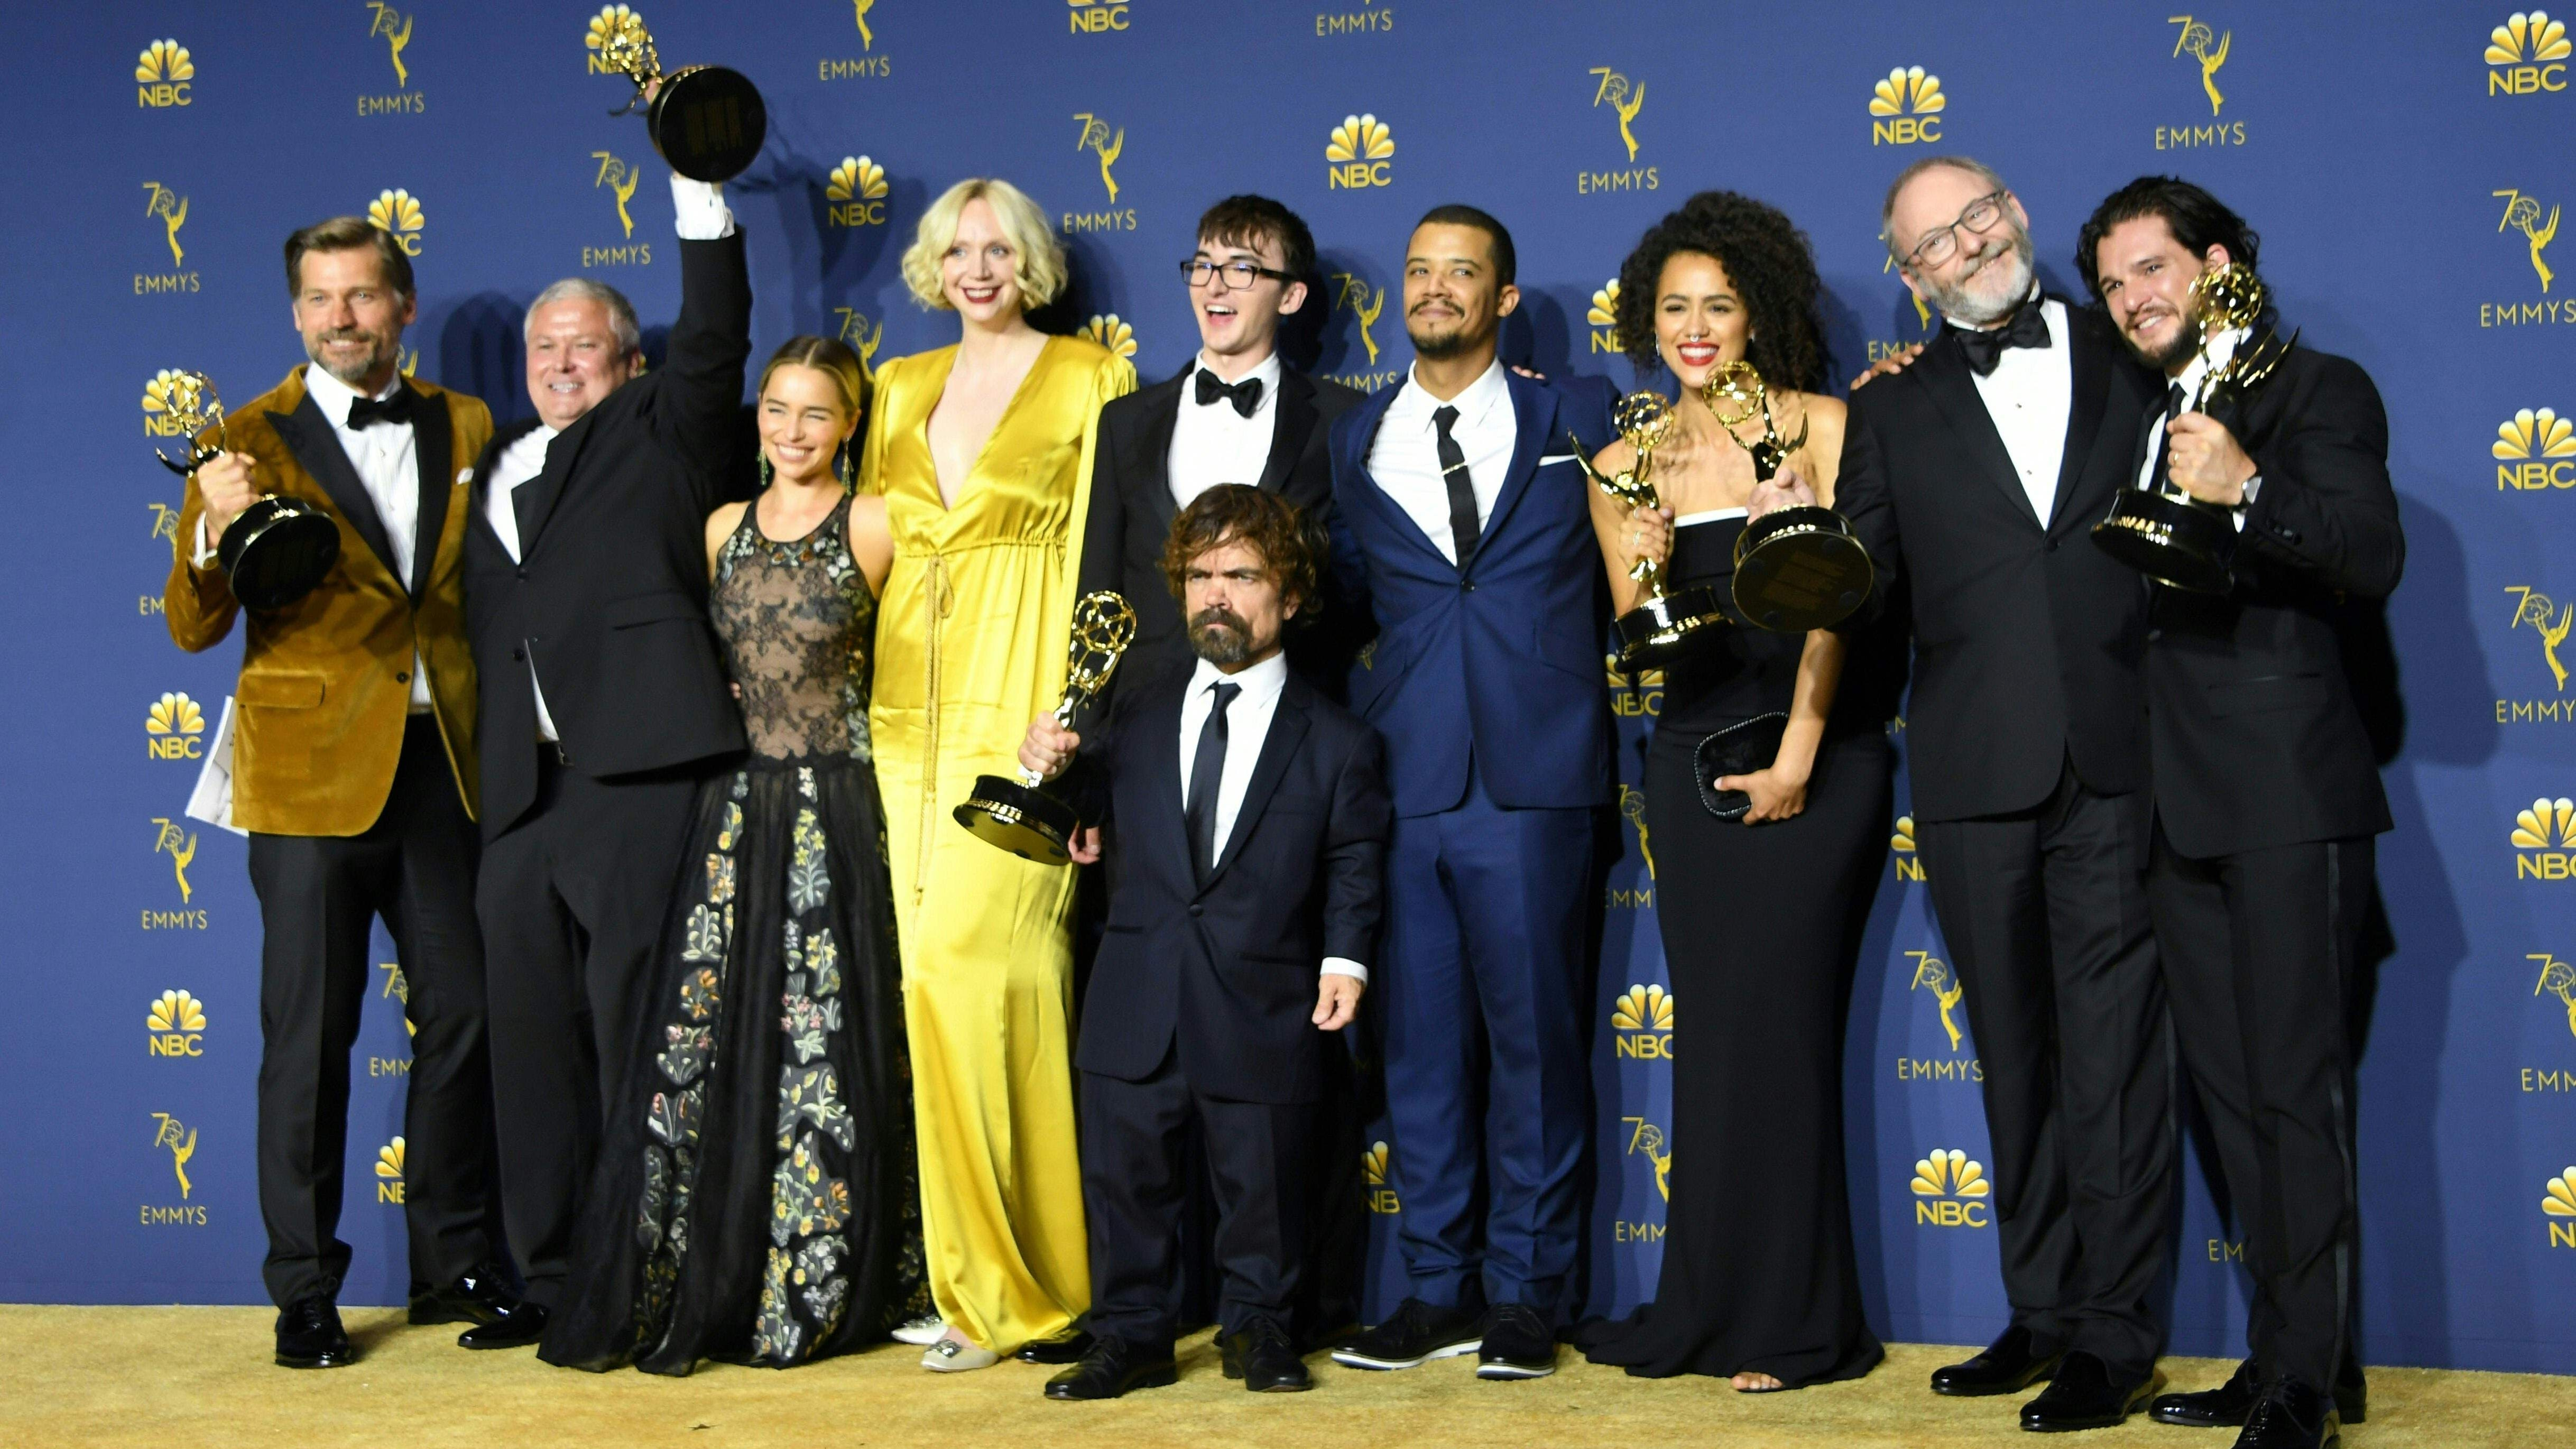 Emmys 2018: The sights, scenes and best quotes from backstage (and why Trump was ignored)